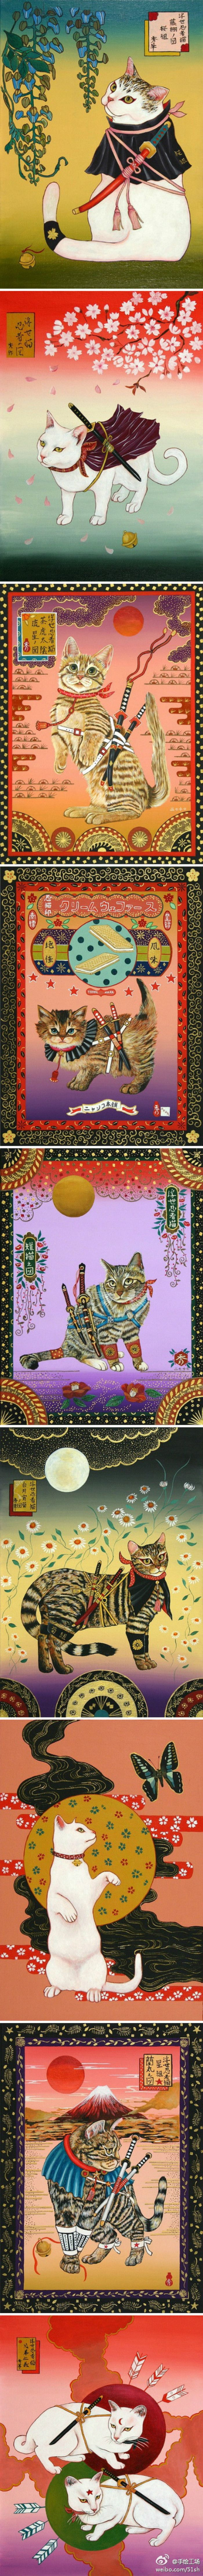 "Ukiyo-e Ninja Cat illustrations -- 田中秀治~浮世忍者猫~ (""Tanaka Shuji"" may be the painter?)  There are more (and single frames) pinned at  https://www.pinterest.com/yrauntruth/felinity-arty-cats/"